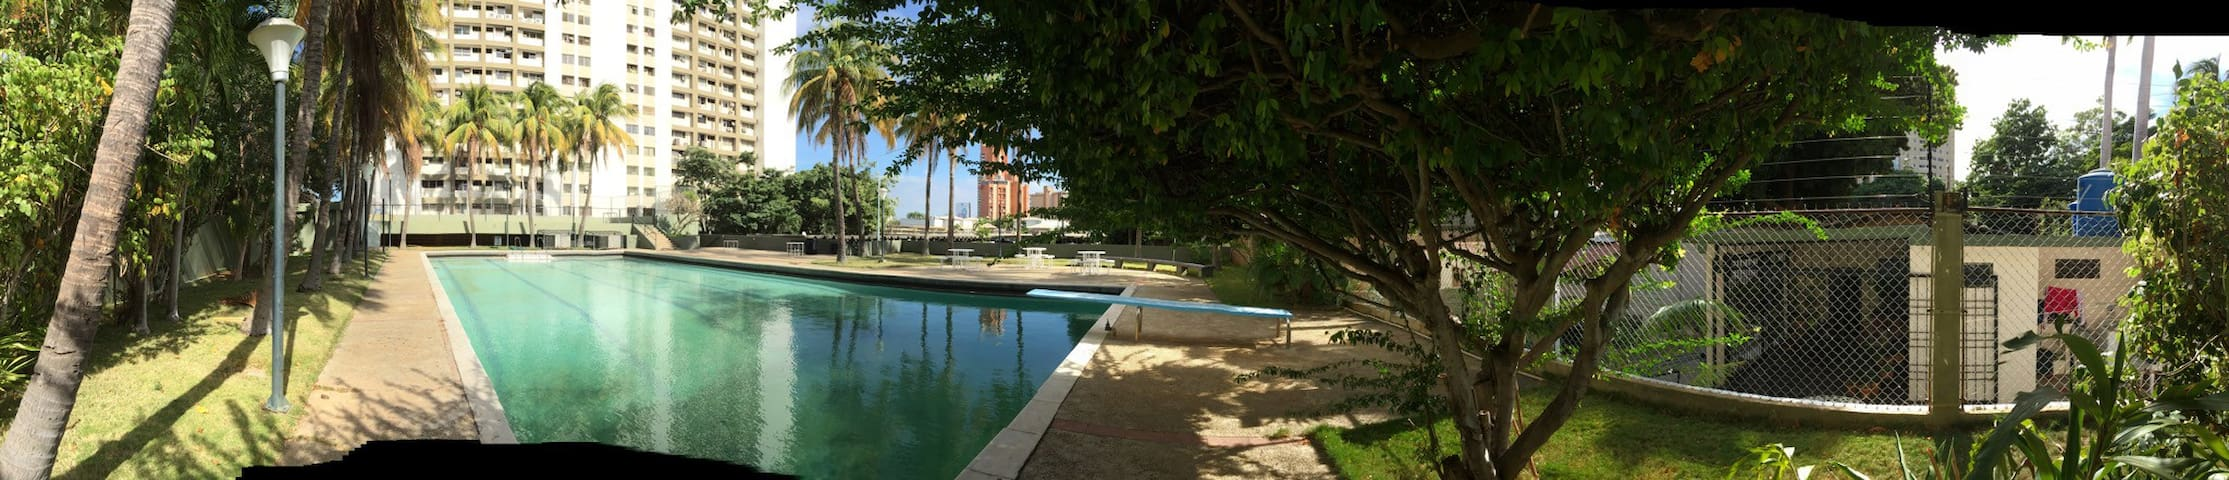 Luxury Apartment in Maracaibo - Maracaibo - Byt